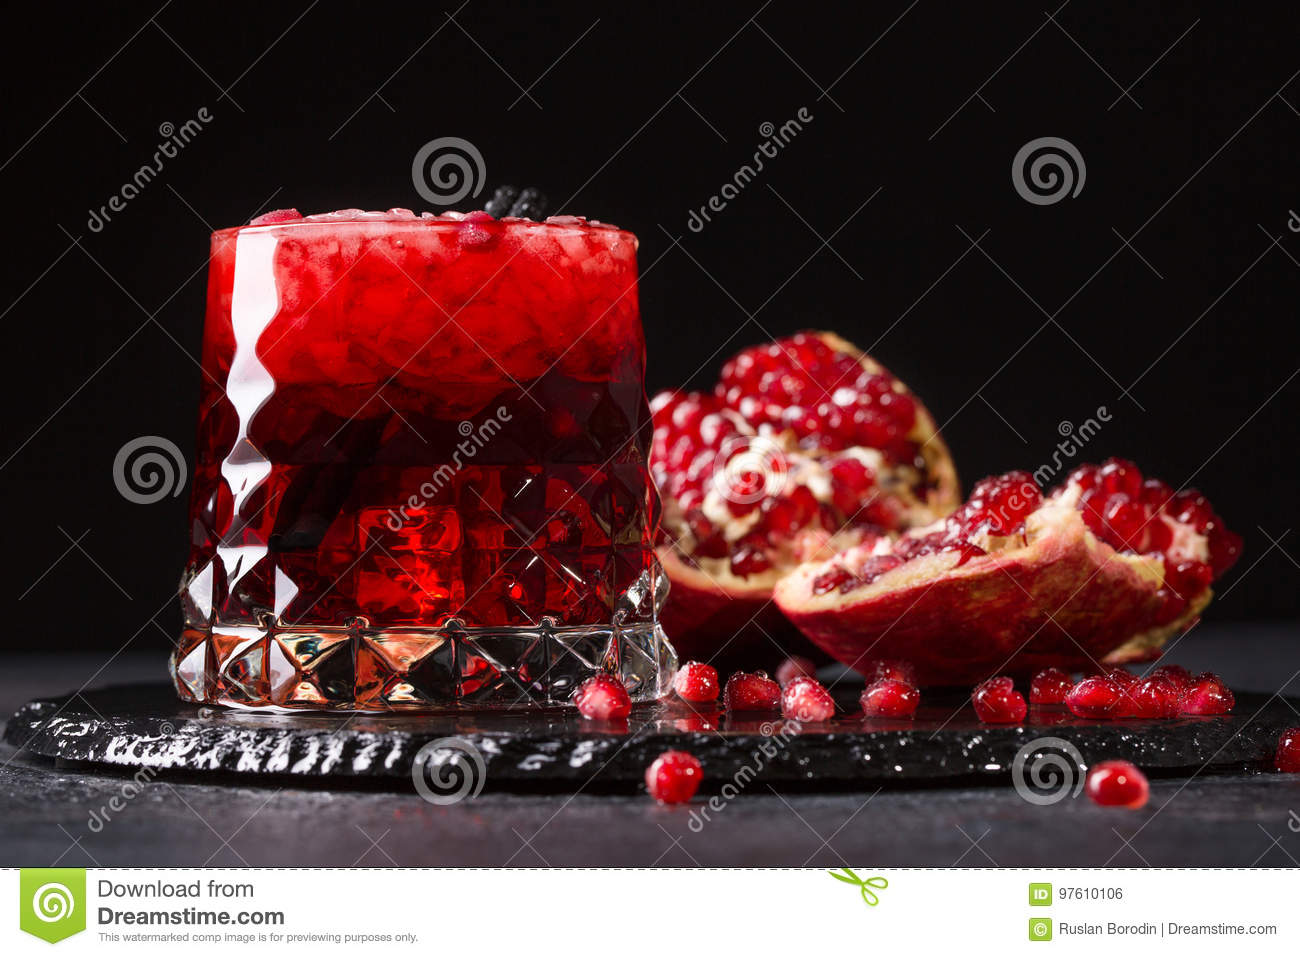 A glass of a pomegranate drink with ice and cut garnet on a black background. Fresh and organic summer cocktails.